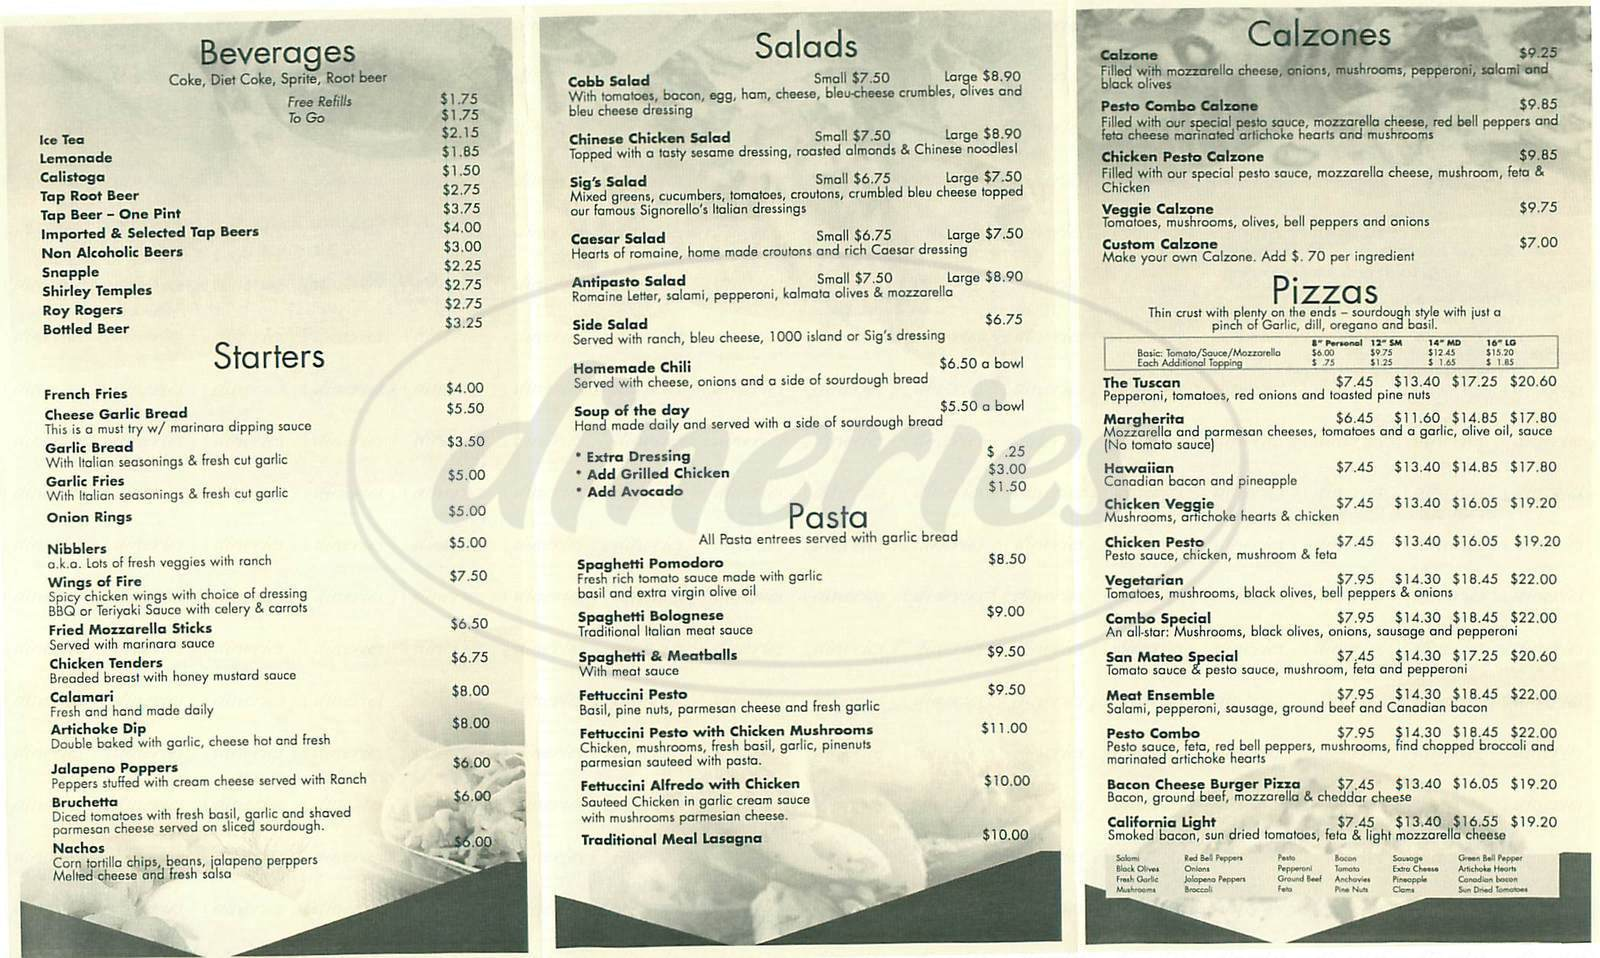 menu for Original Nicks Pizzeria & Pub